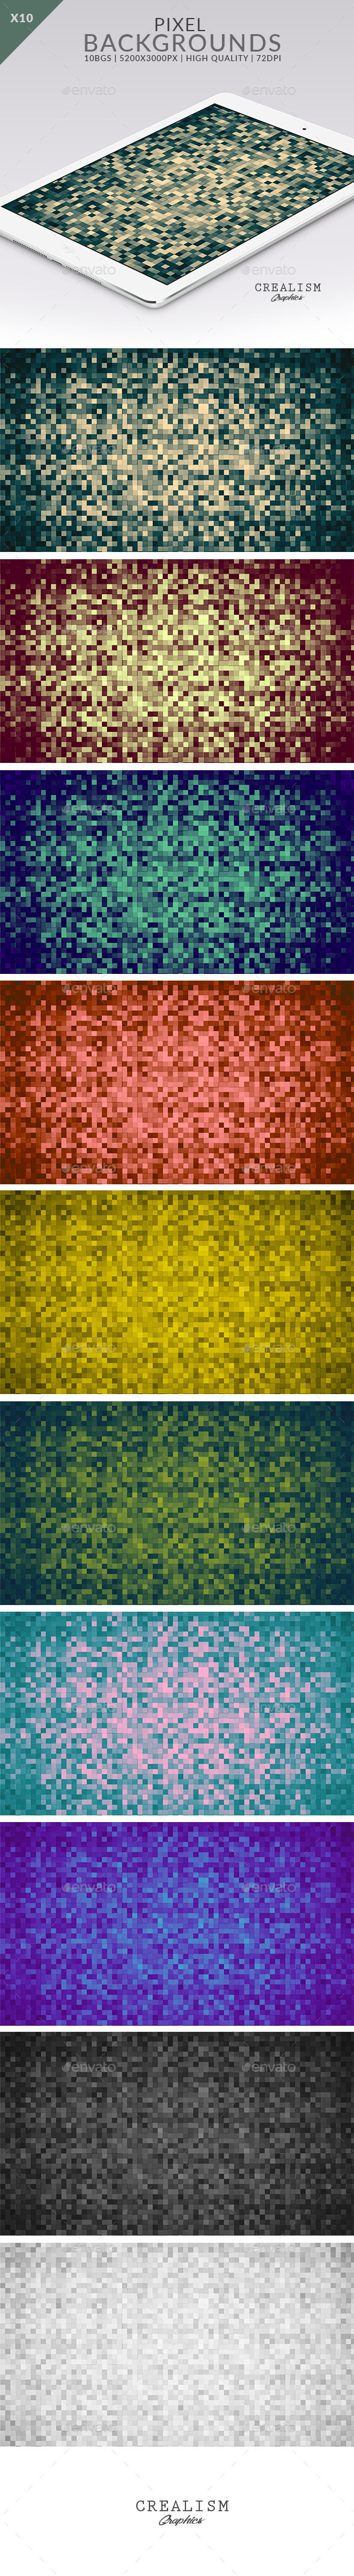 10 Pixel | Backgrounds - Backgrounds Graphics